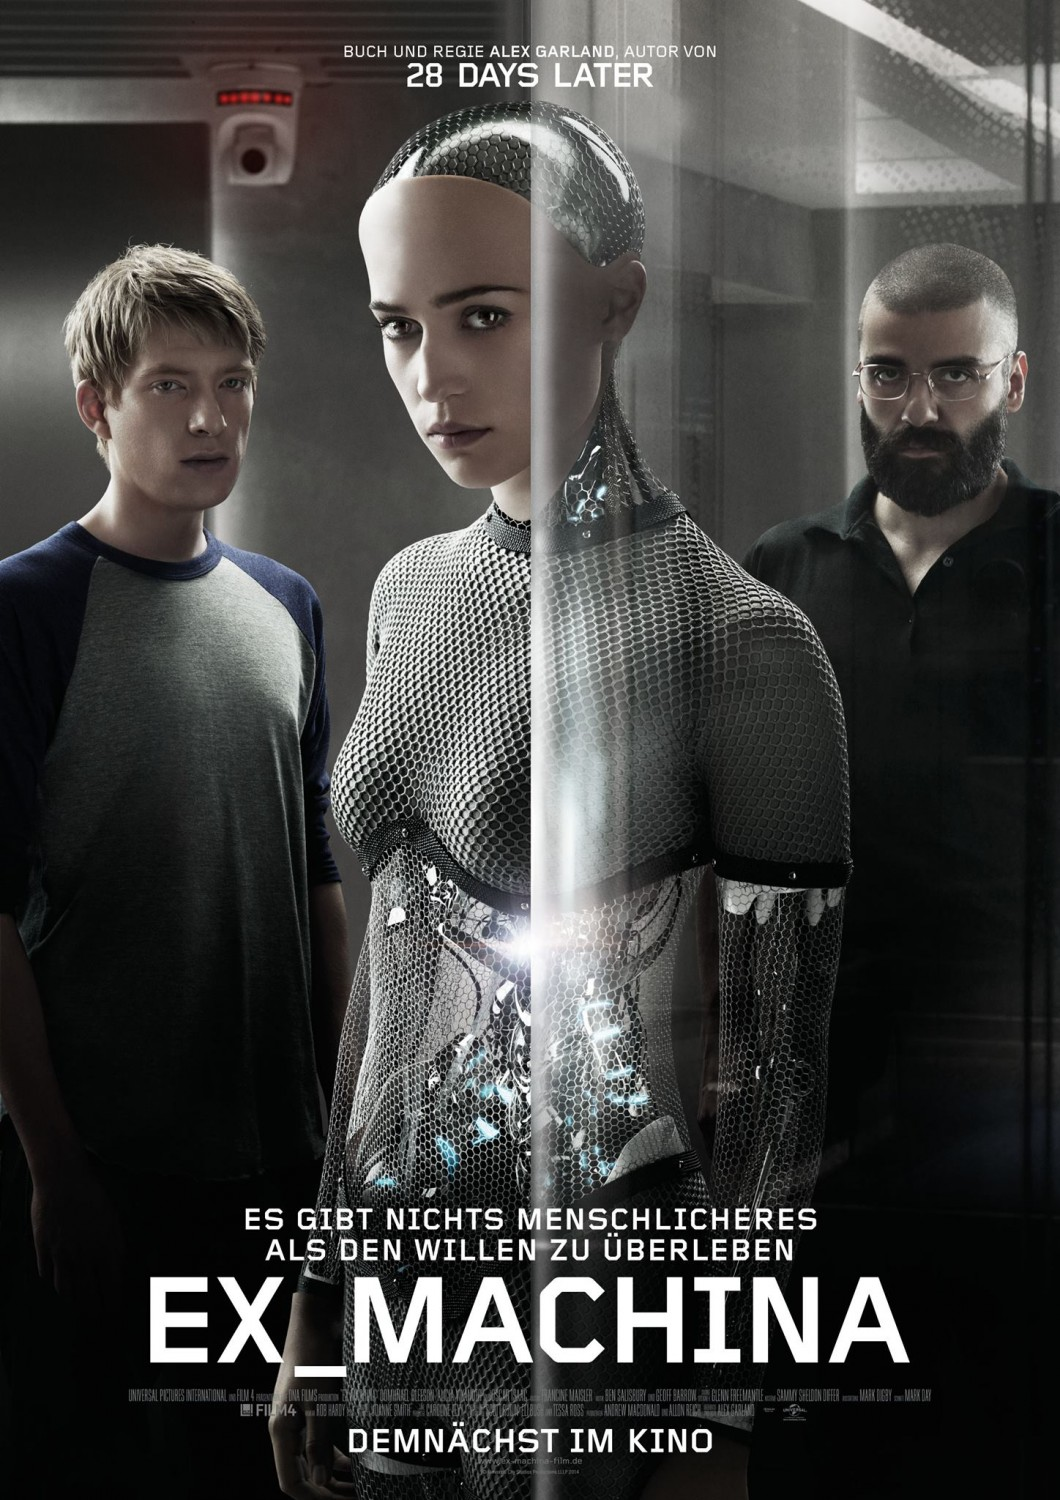 Extra Large Movie Poster Image for Ex Machina